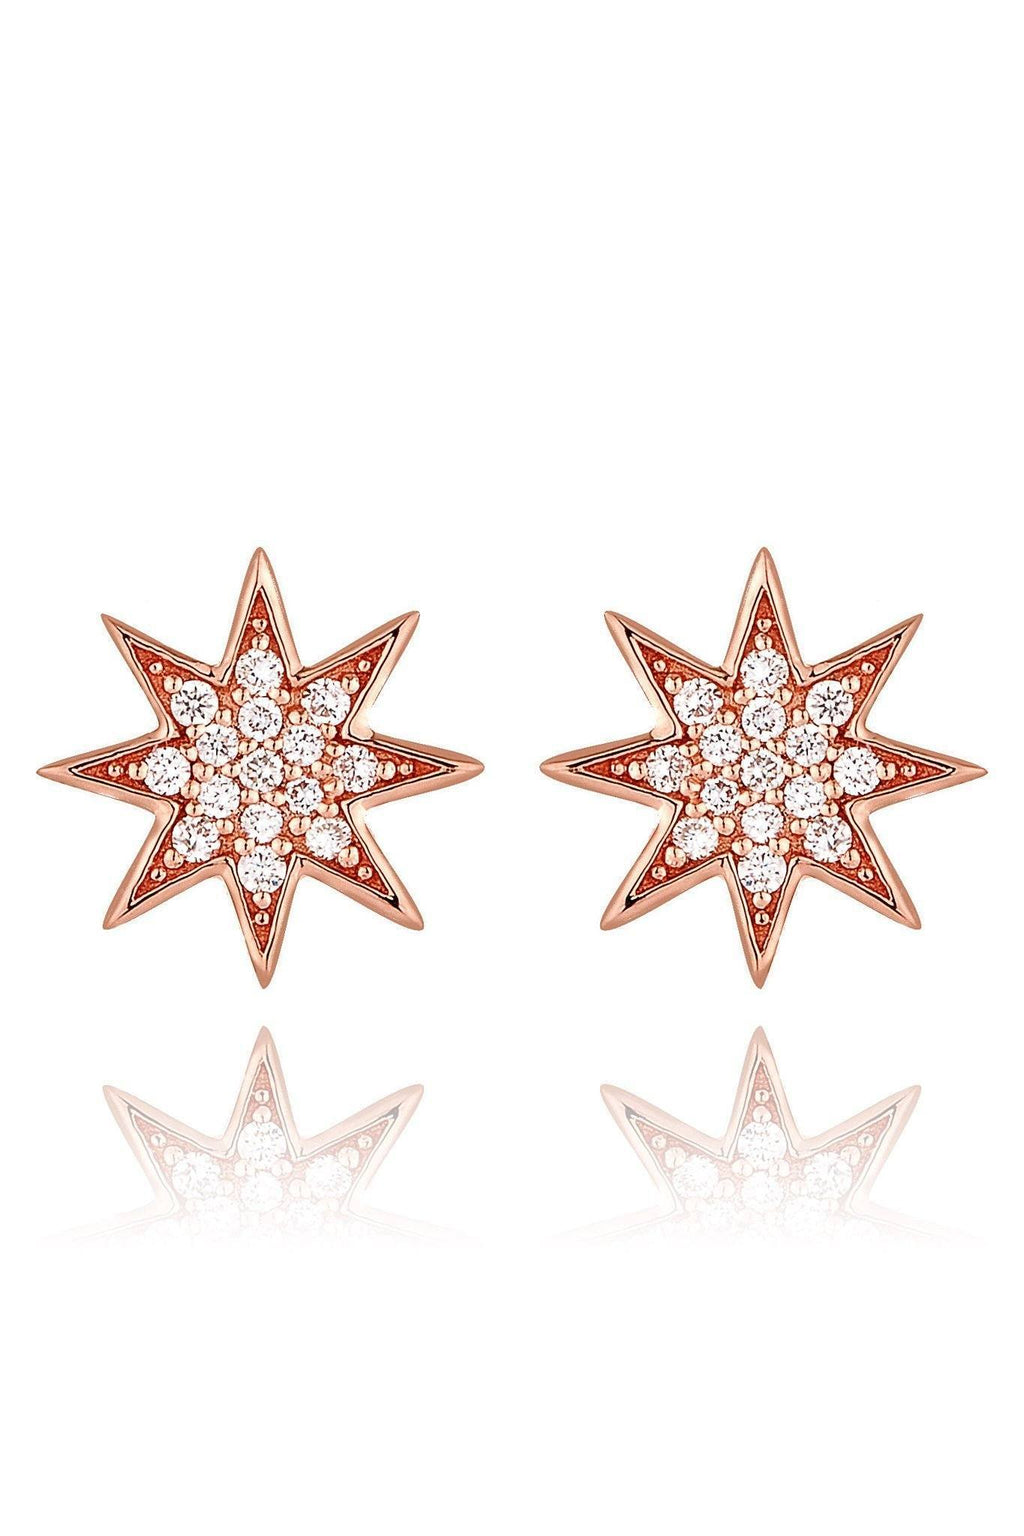 Star Diamond Pavé Stud Earrings Earrings Lark and Berry Rose Gold